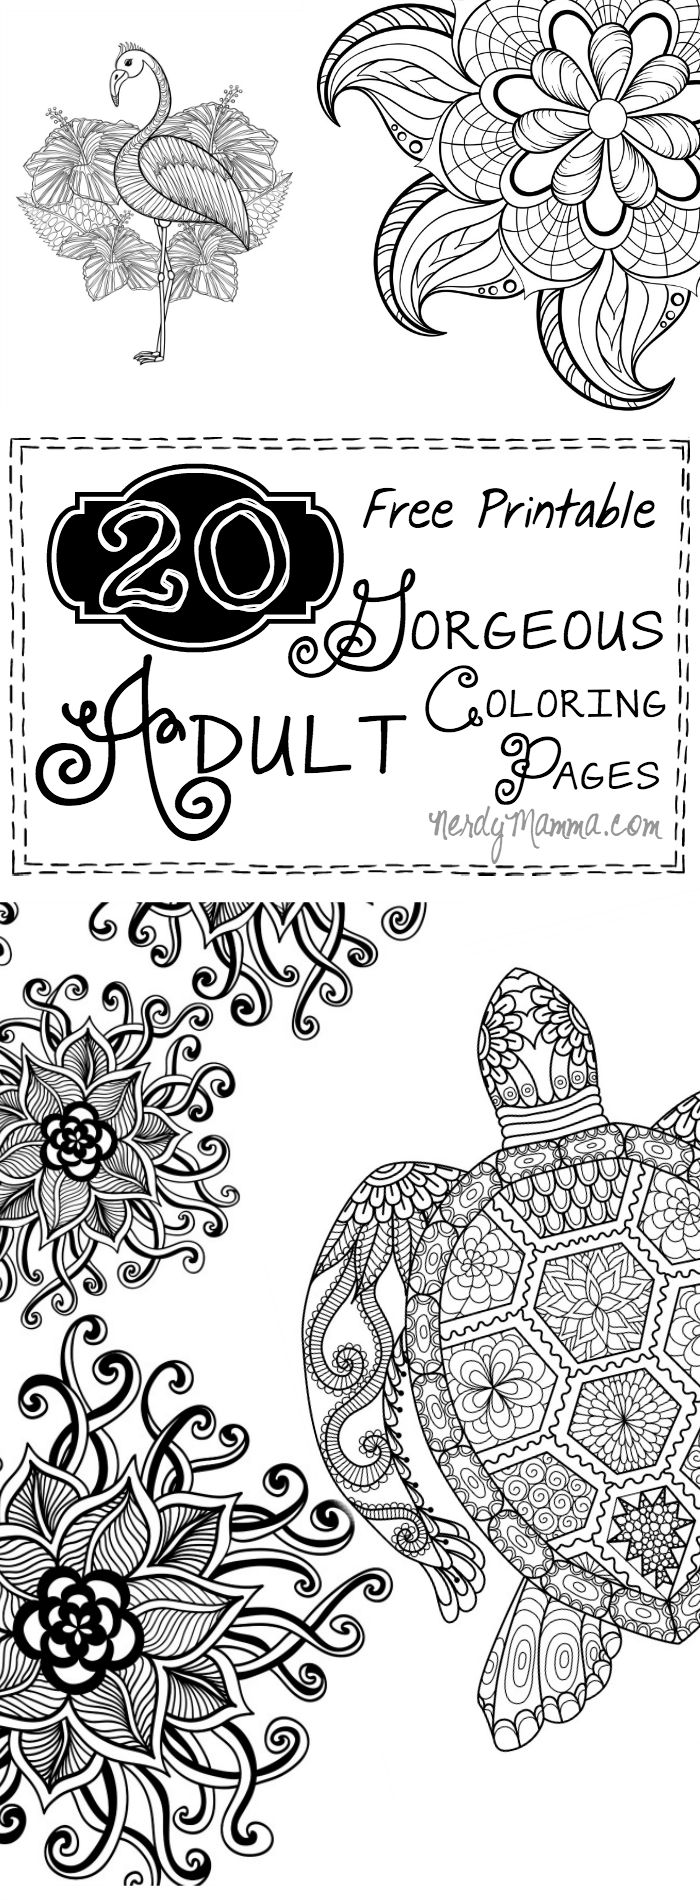 Coloring book printouts for adults - 20 Gorgeous Free Printable Adult Coloring Pages Colouring